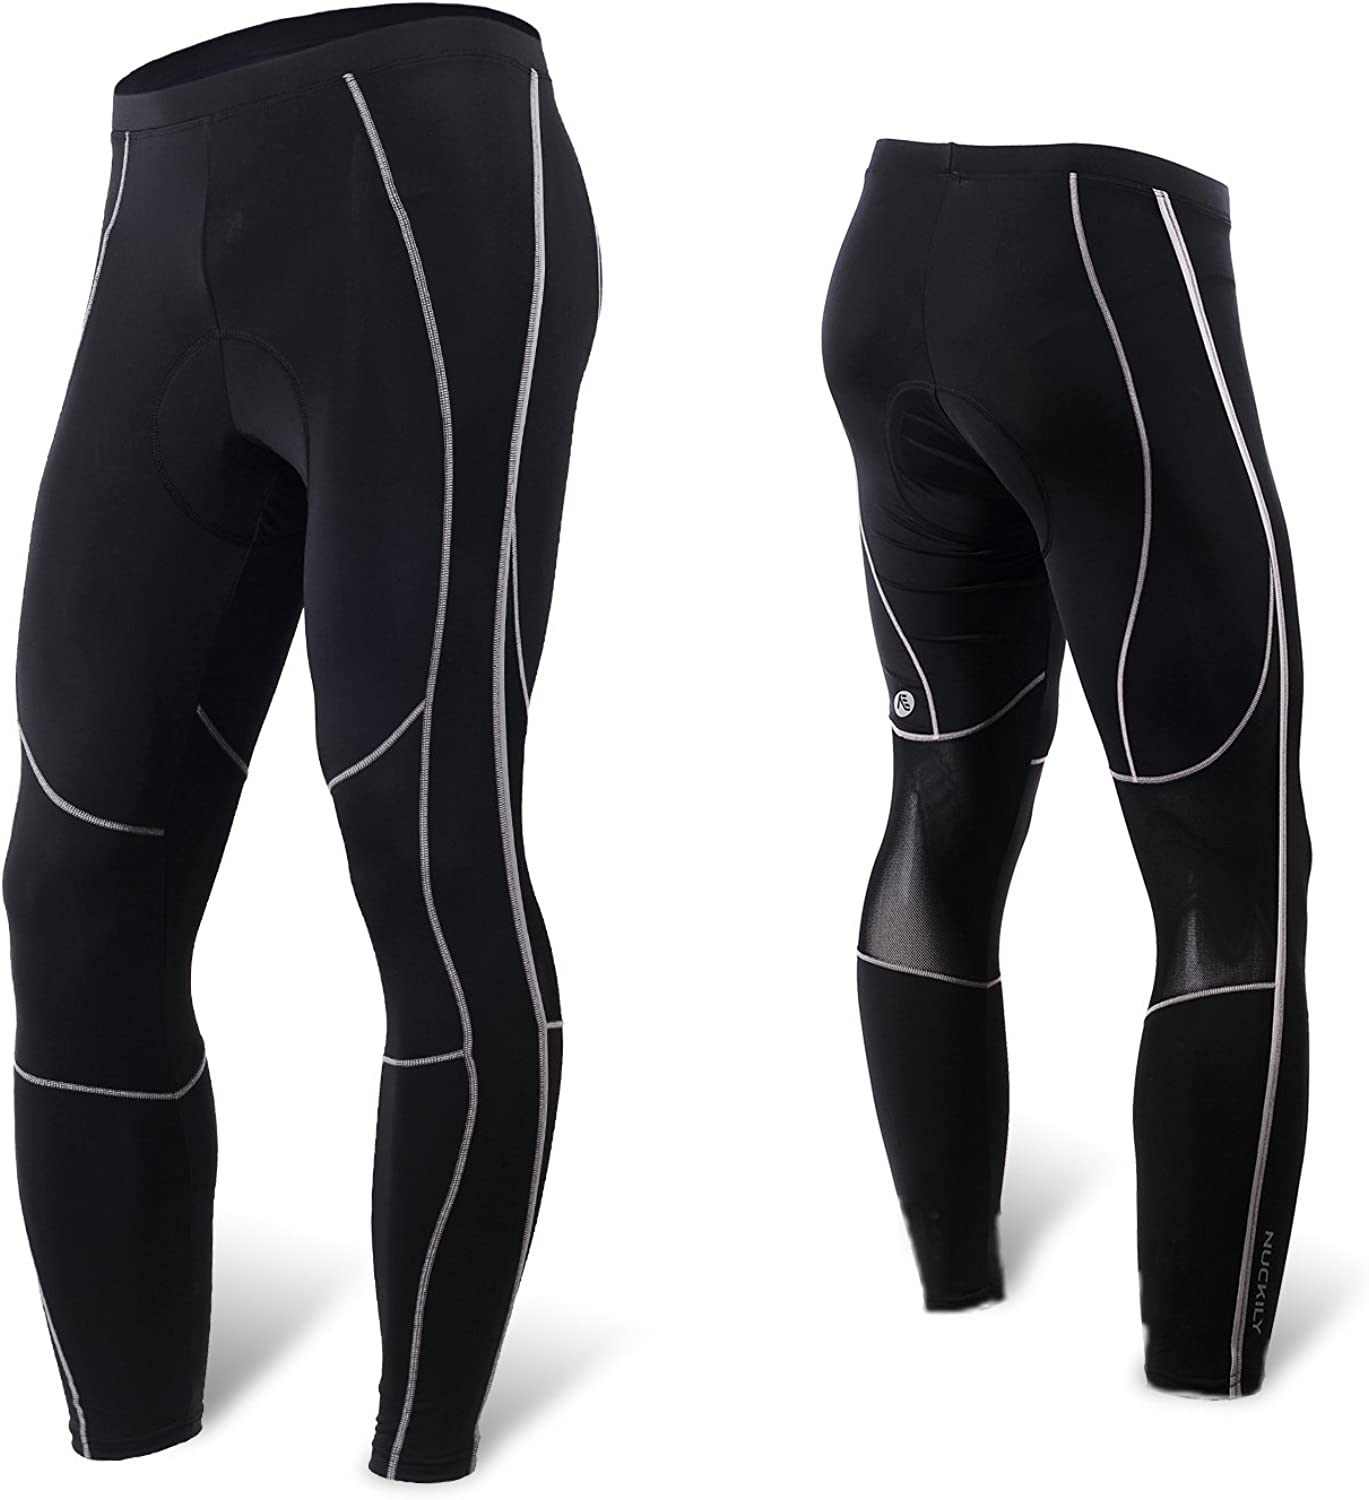 Men/'s Sports Bicycle 3D Padded Pants Riding Bike Tights Cycling Trousers